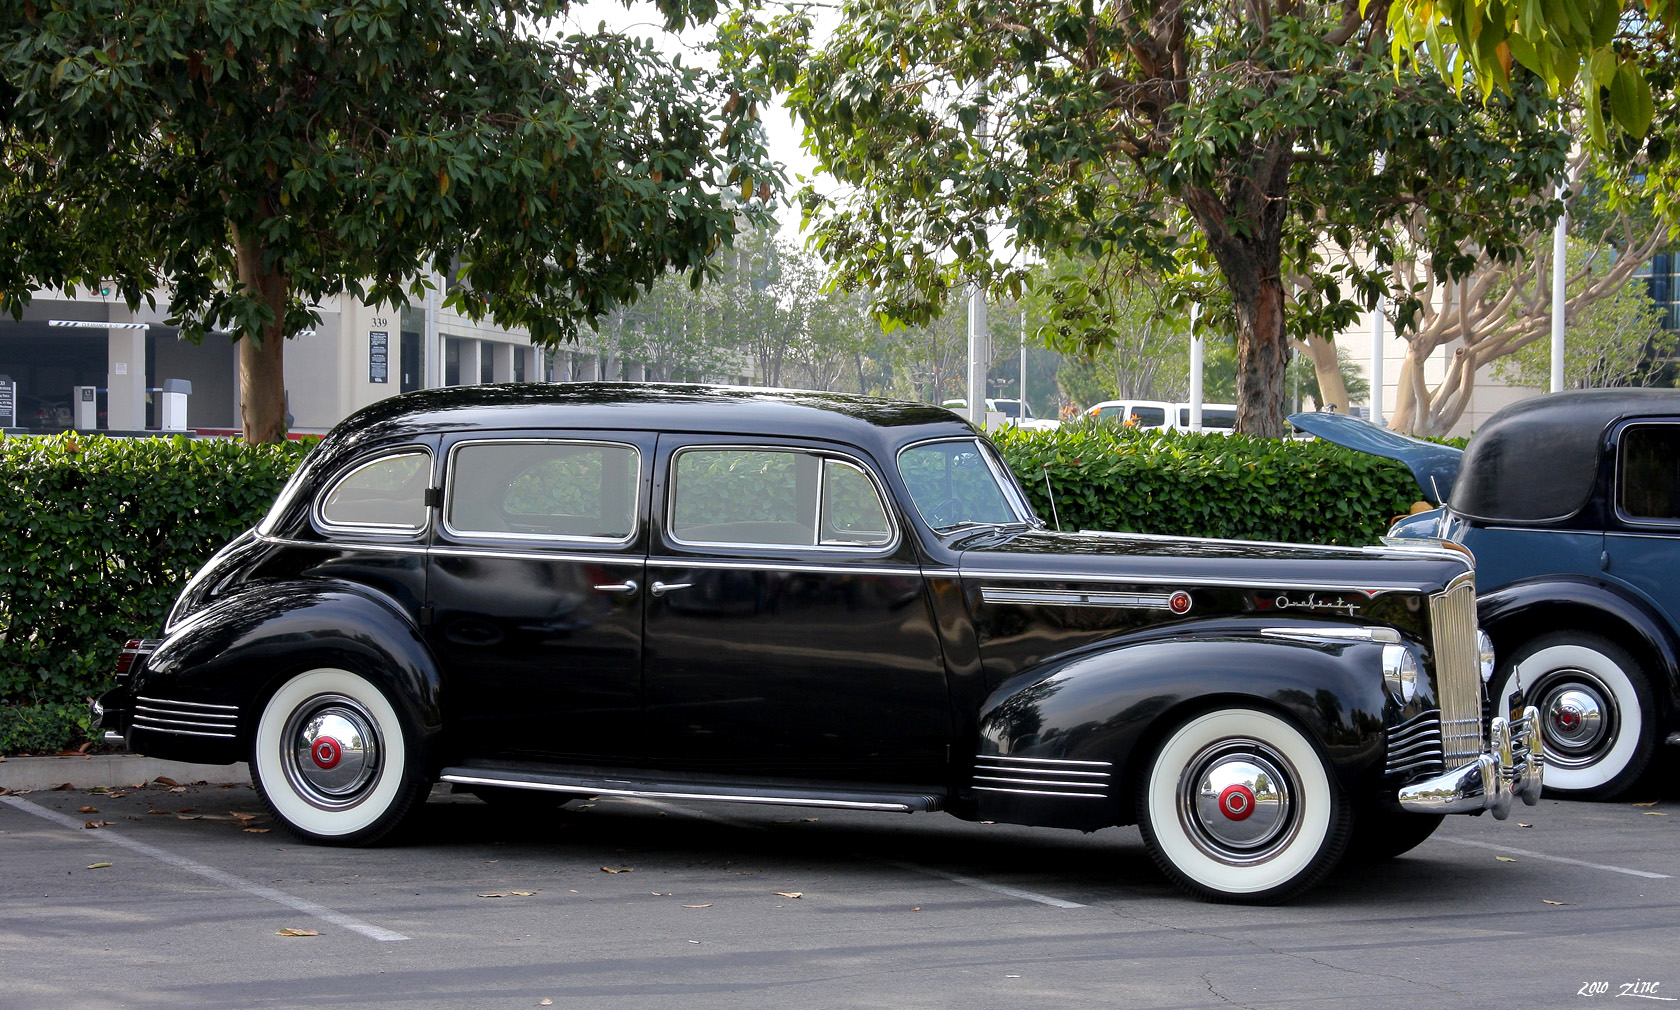 1942 Packard 160 Limousine Pictures to Pin on Pinterest ...